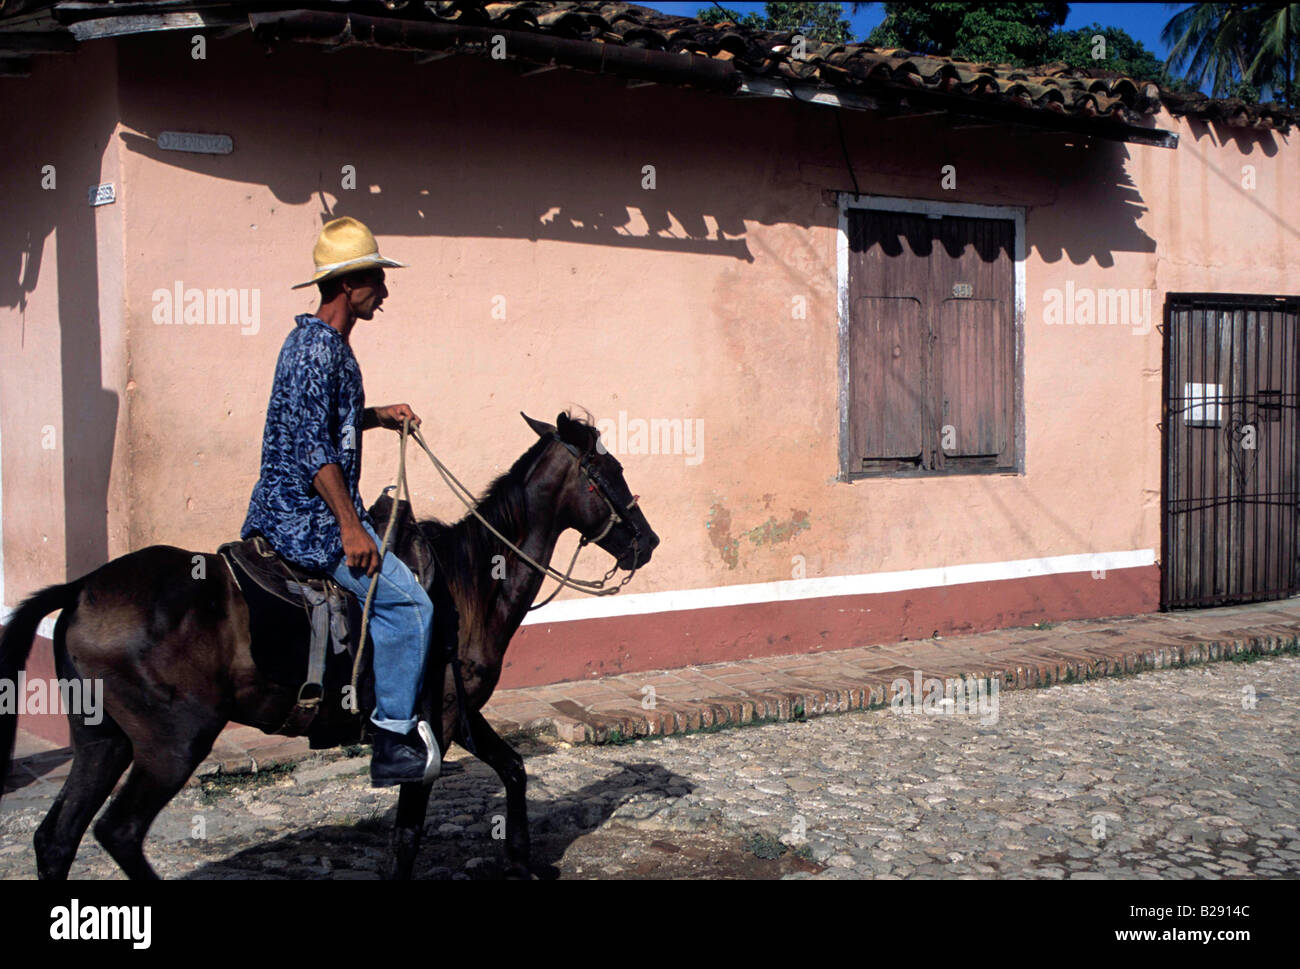 Local transport in Trinidad cuba Date 23 04 2008 Ref ZB955 113876 0001 COMPULSORY CREDIT World Pictures Photoshot - Stock Image